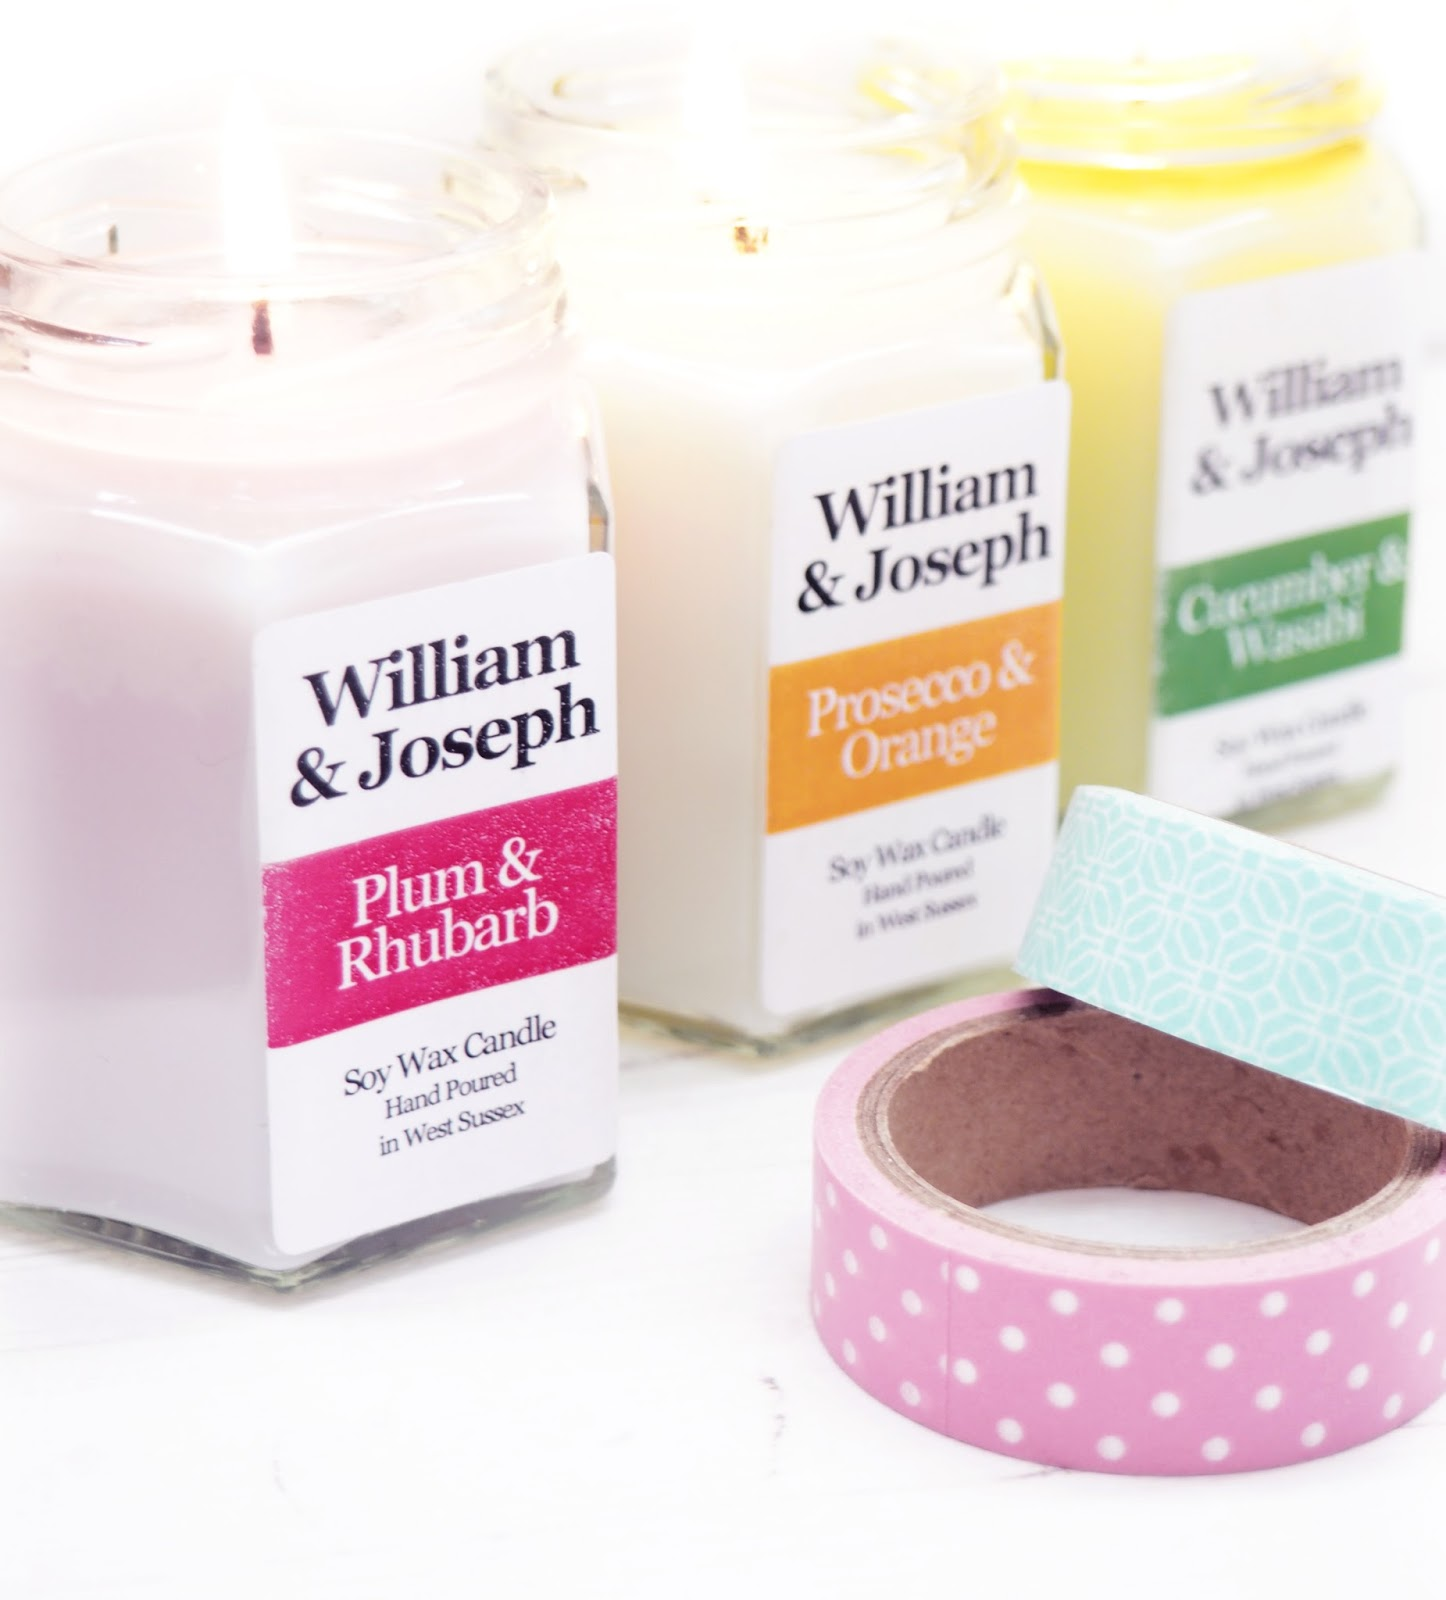 William & Joseph Spring Candle Trio Giveaway